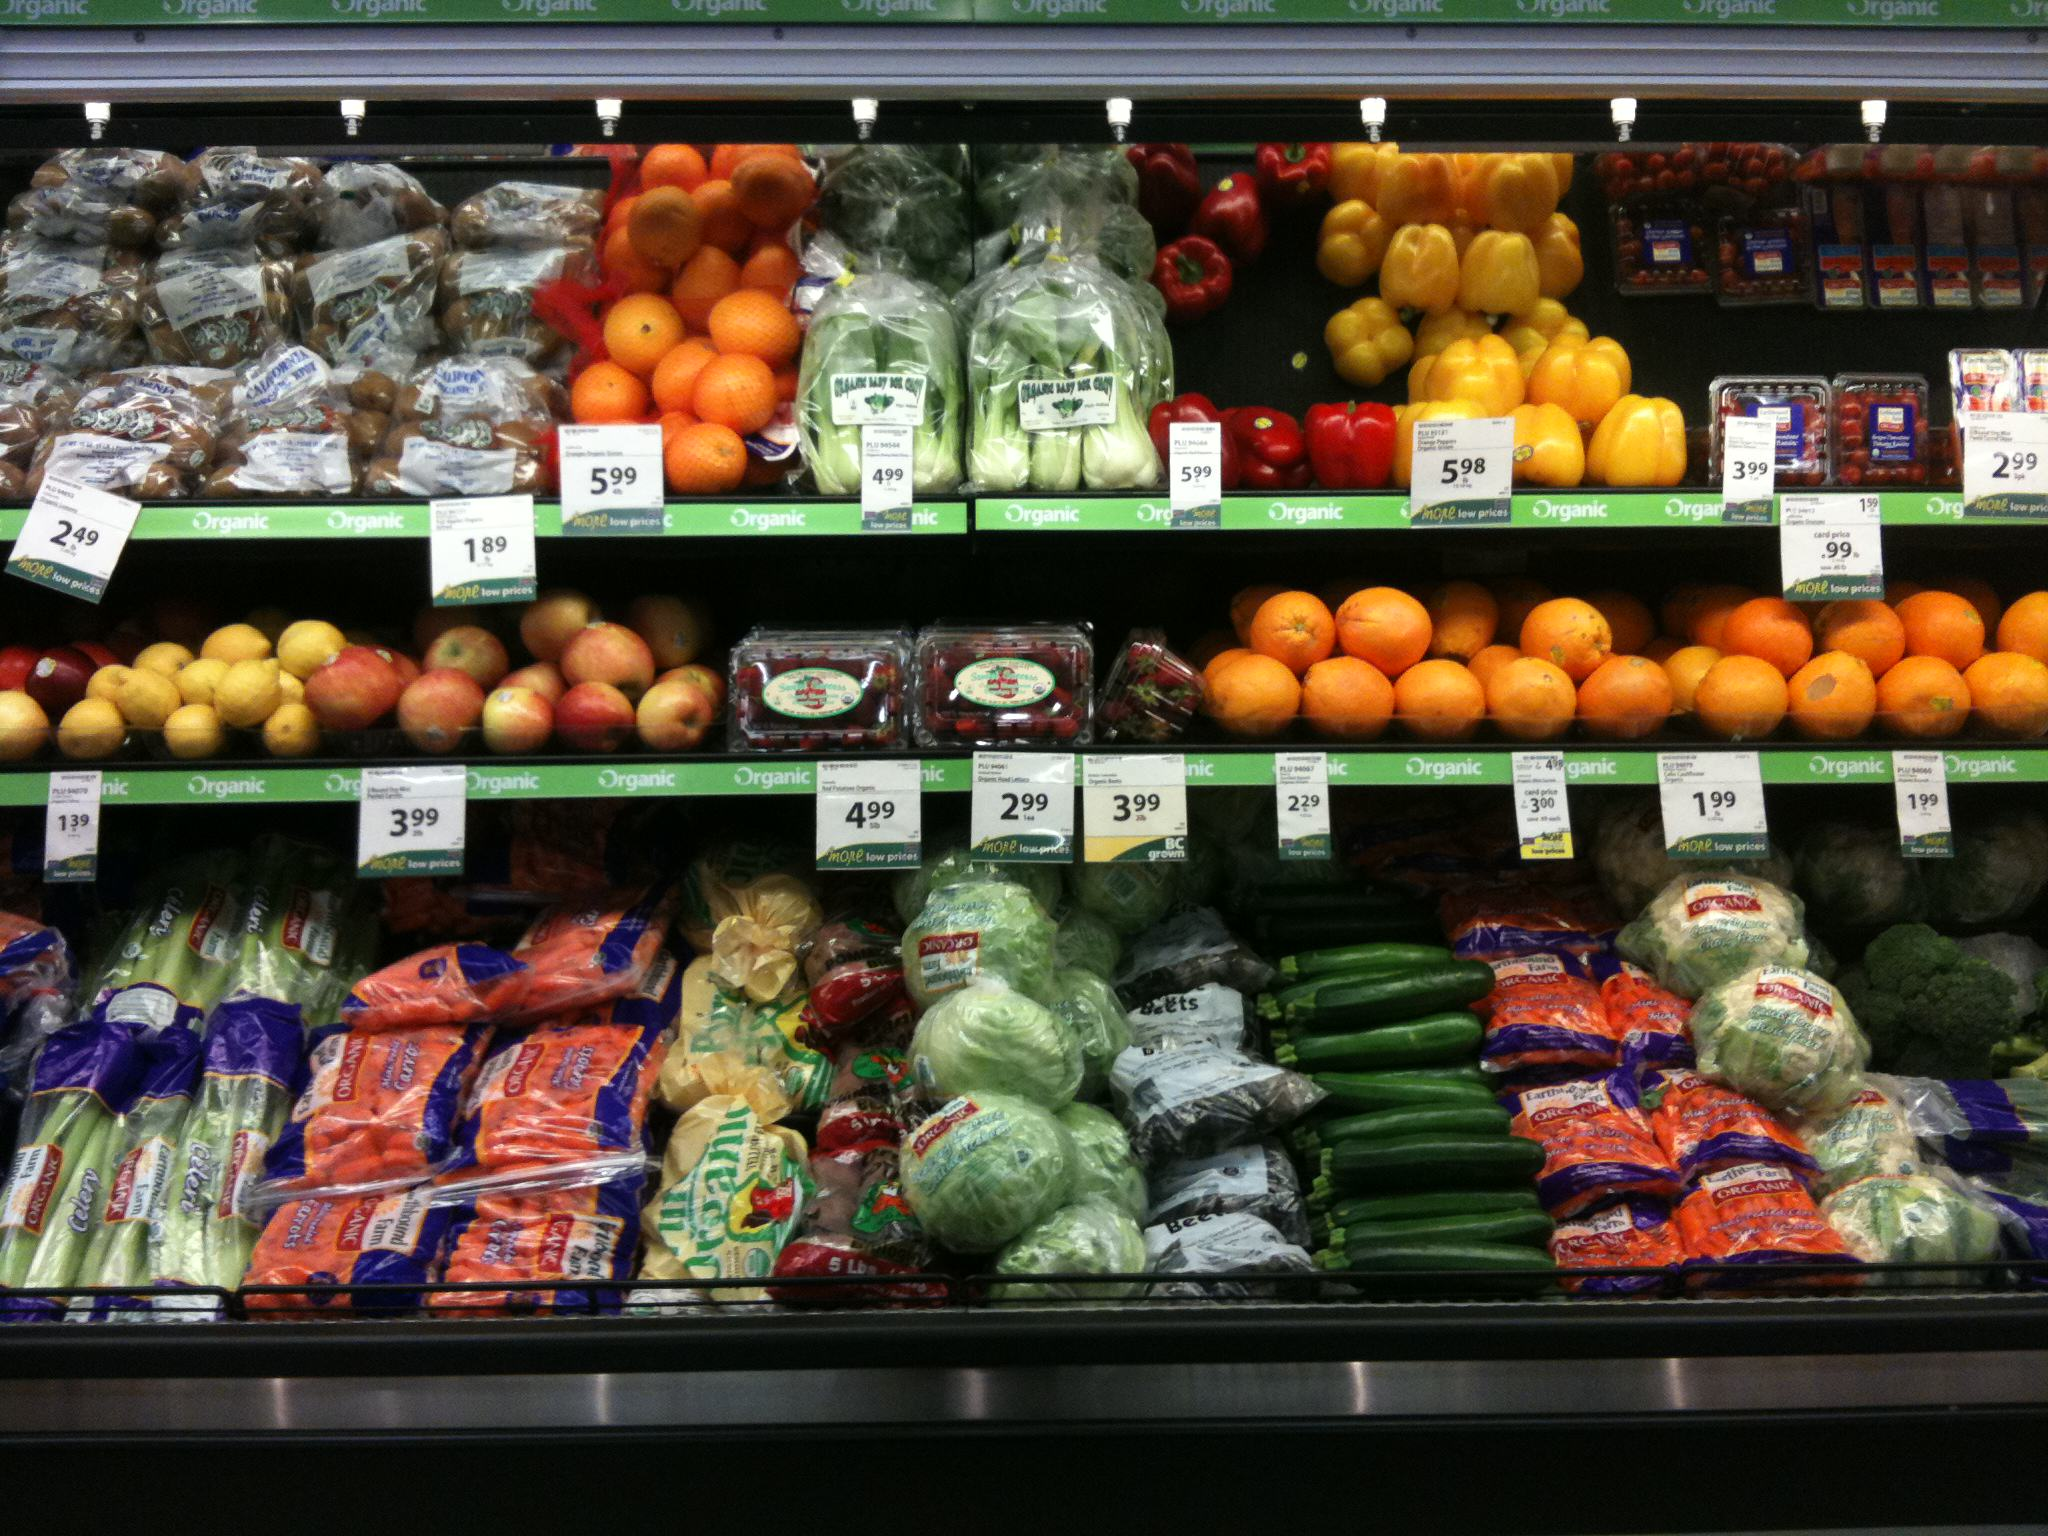 Sign Our Petition To Force Supermarkets To Donate Unsold Food img 0459